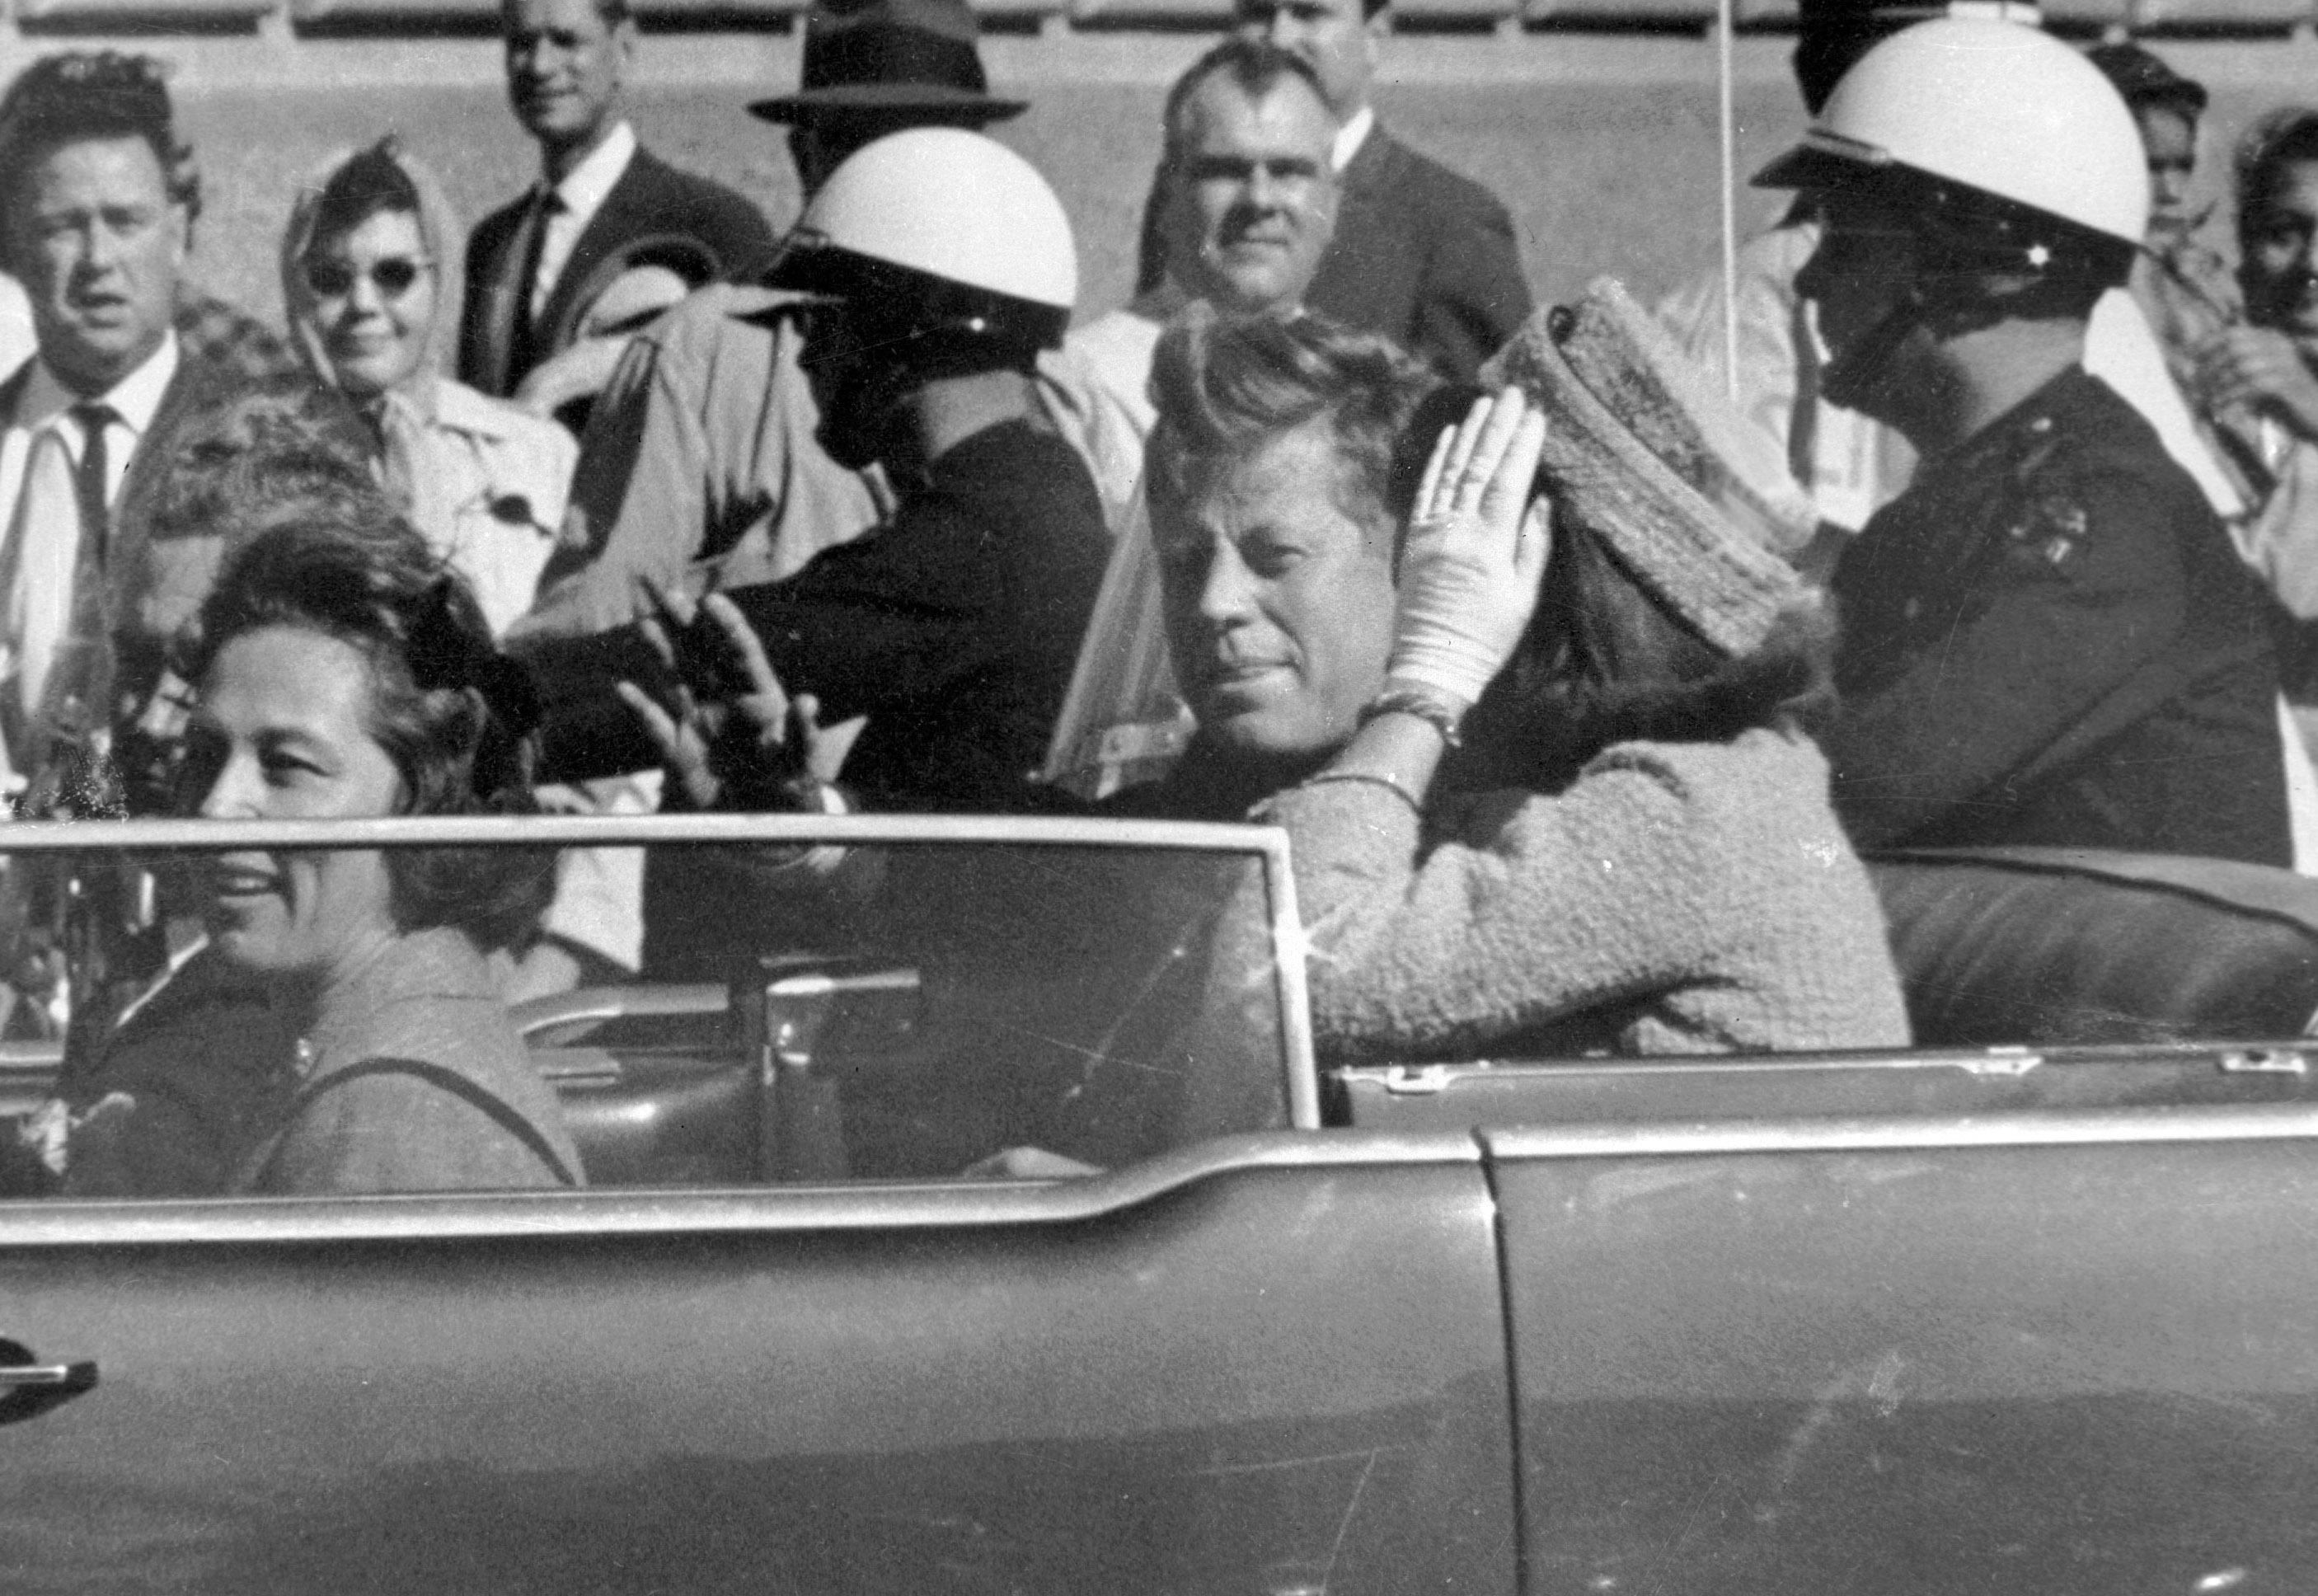 <div class='meta'><div class='origin-logo' data-origin='none'></div><span class='caption-text' data-credit='Jim Altgens/AP Photo'>n this Nov. 22, 1963 file photo, President John F. Kennedy waves from his car in a motorcade approximately one minute before he was shot in Dallas.</span></div>